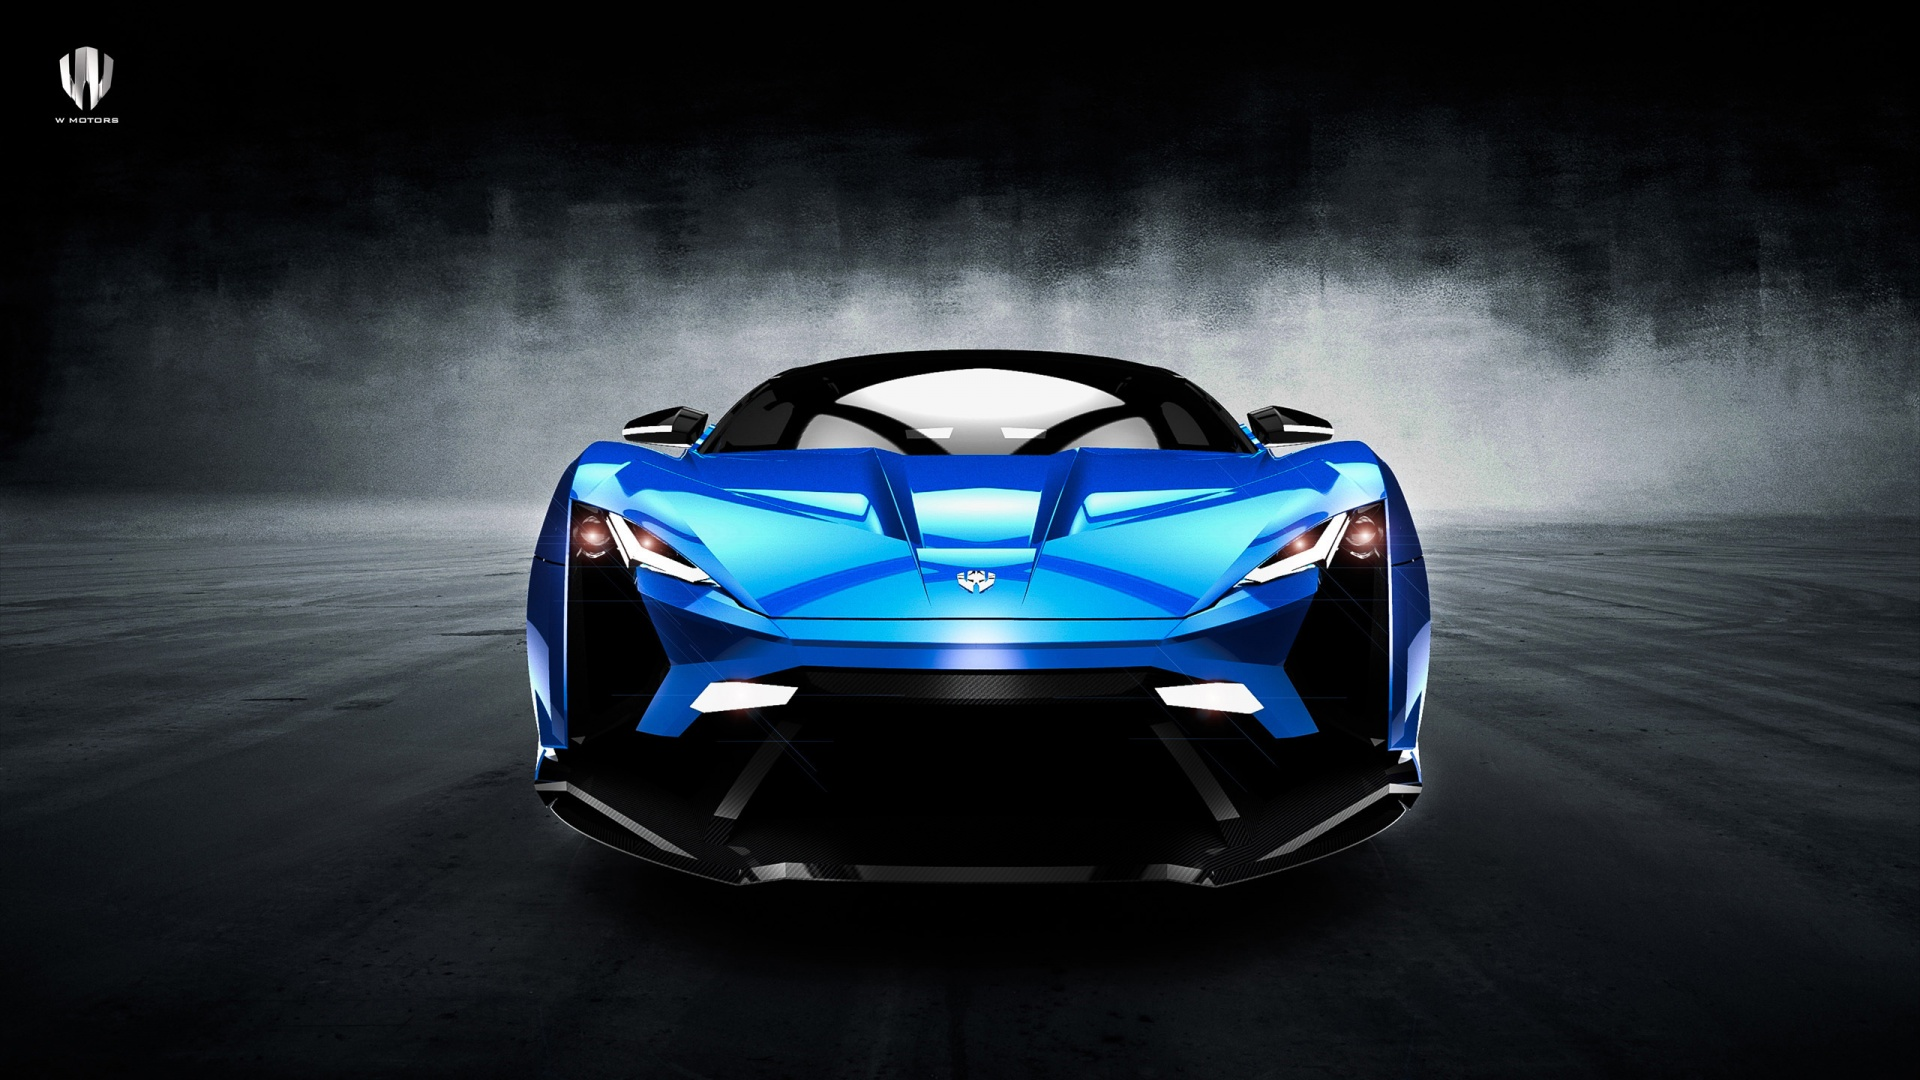 2015 W Motors Lykan SuperSport Wallpaper HD Car Wallpapers 1920x1080